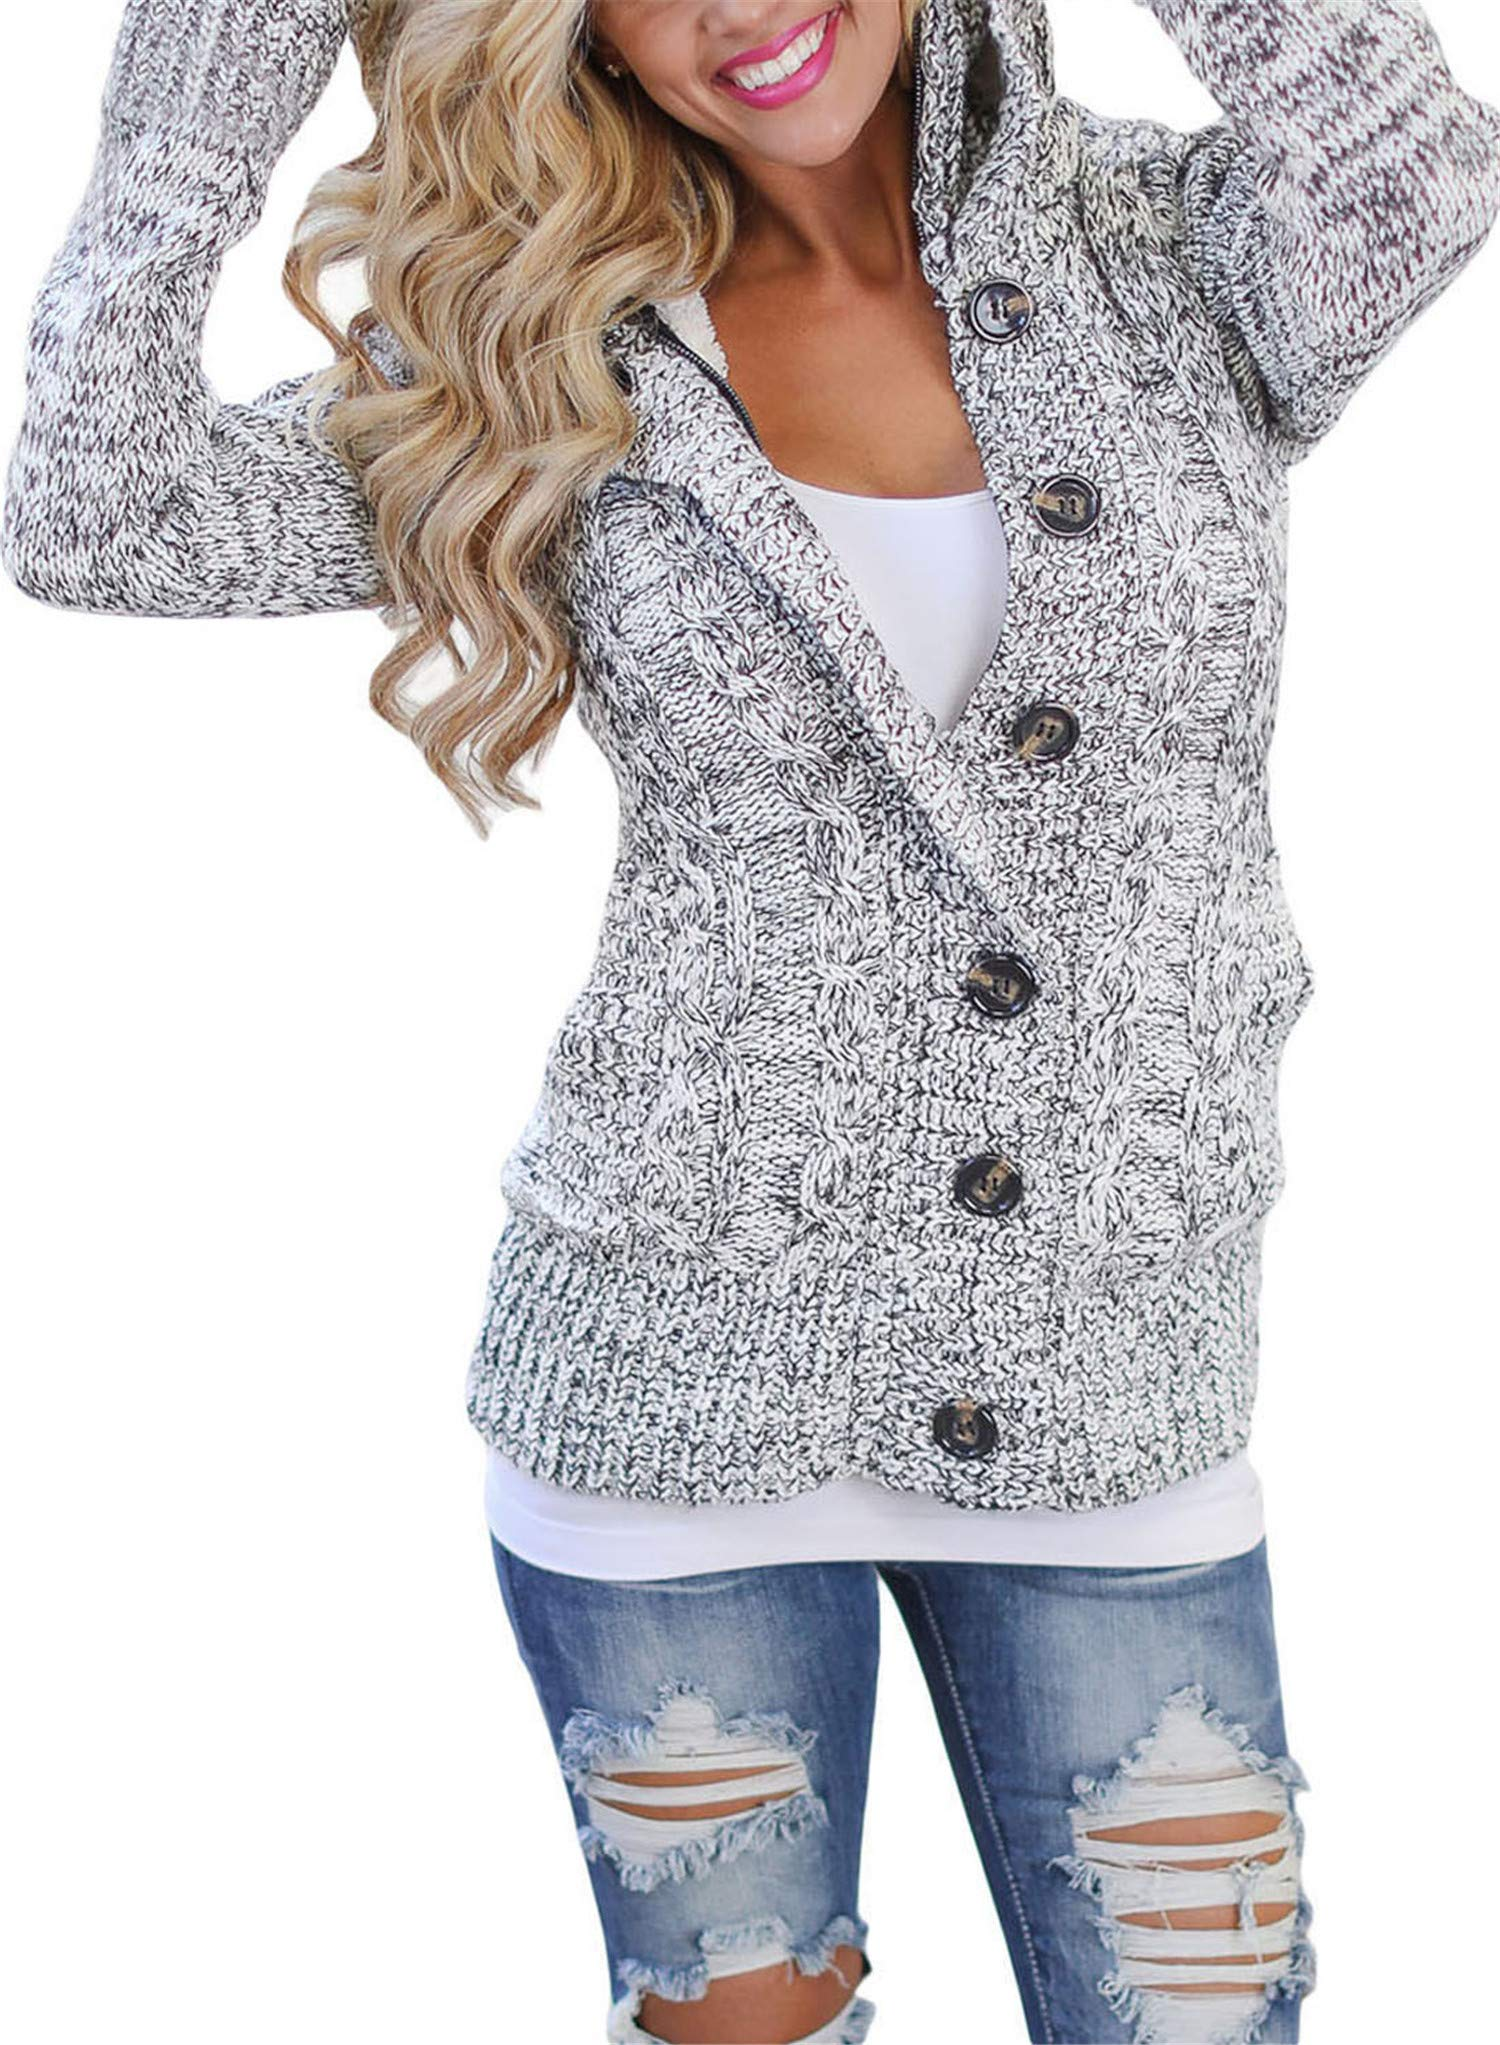 Blibea Womens 2018 Fashion Long Sleeve Hoodie Knit Cardigans Button Down Cable Sweater Coats Outwear Medium Gray by Blibea (Image #2)